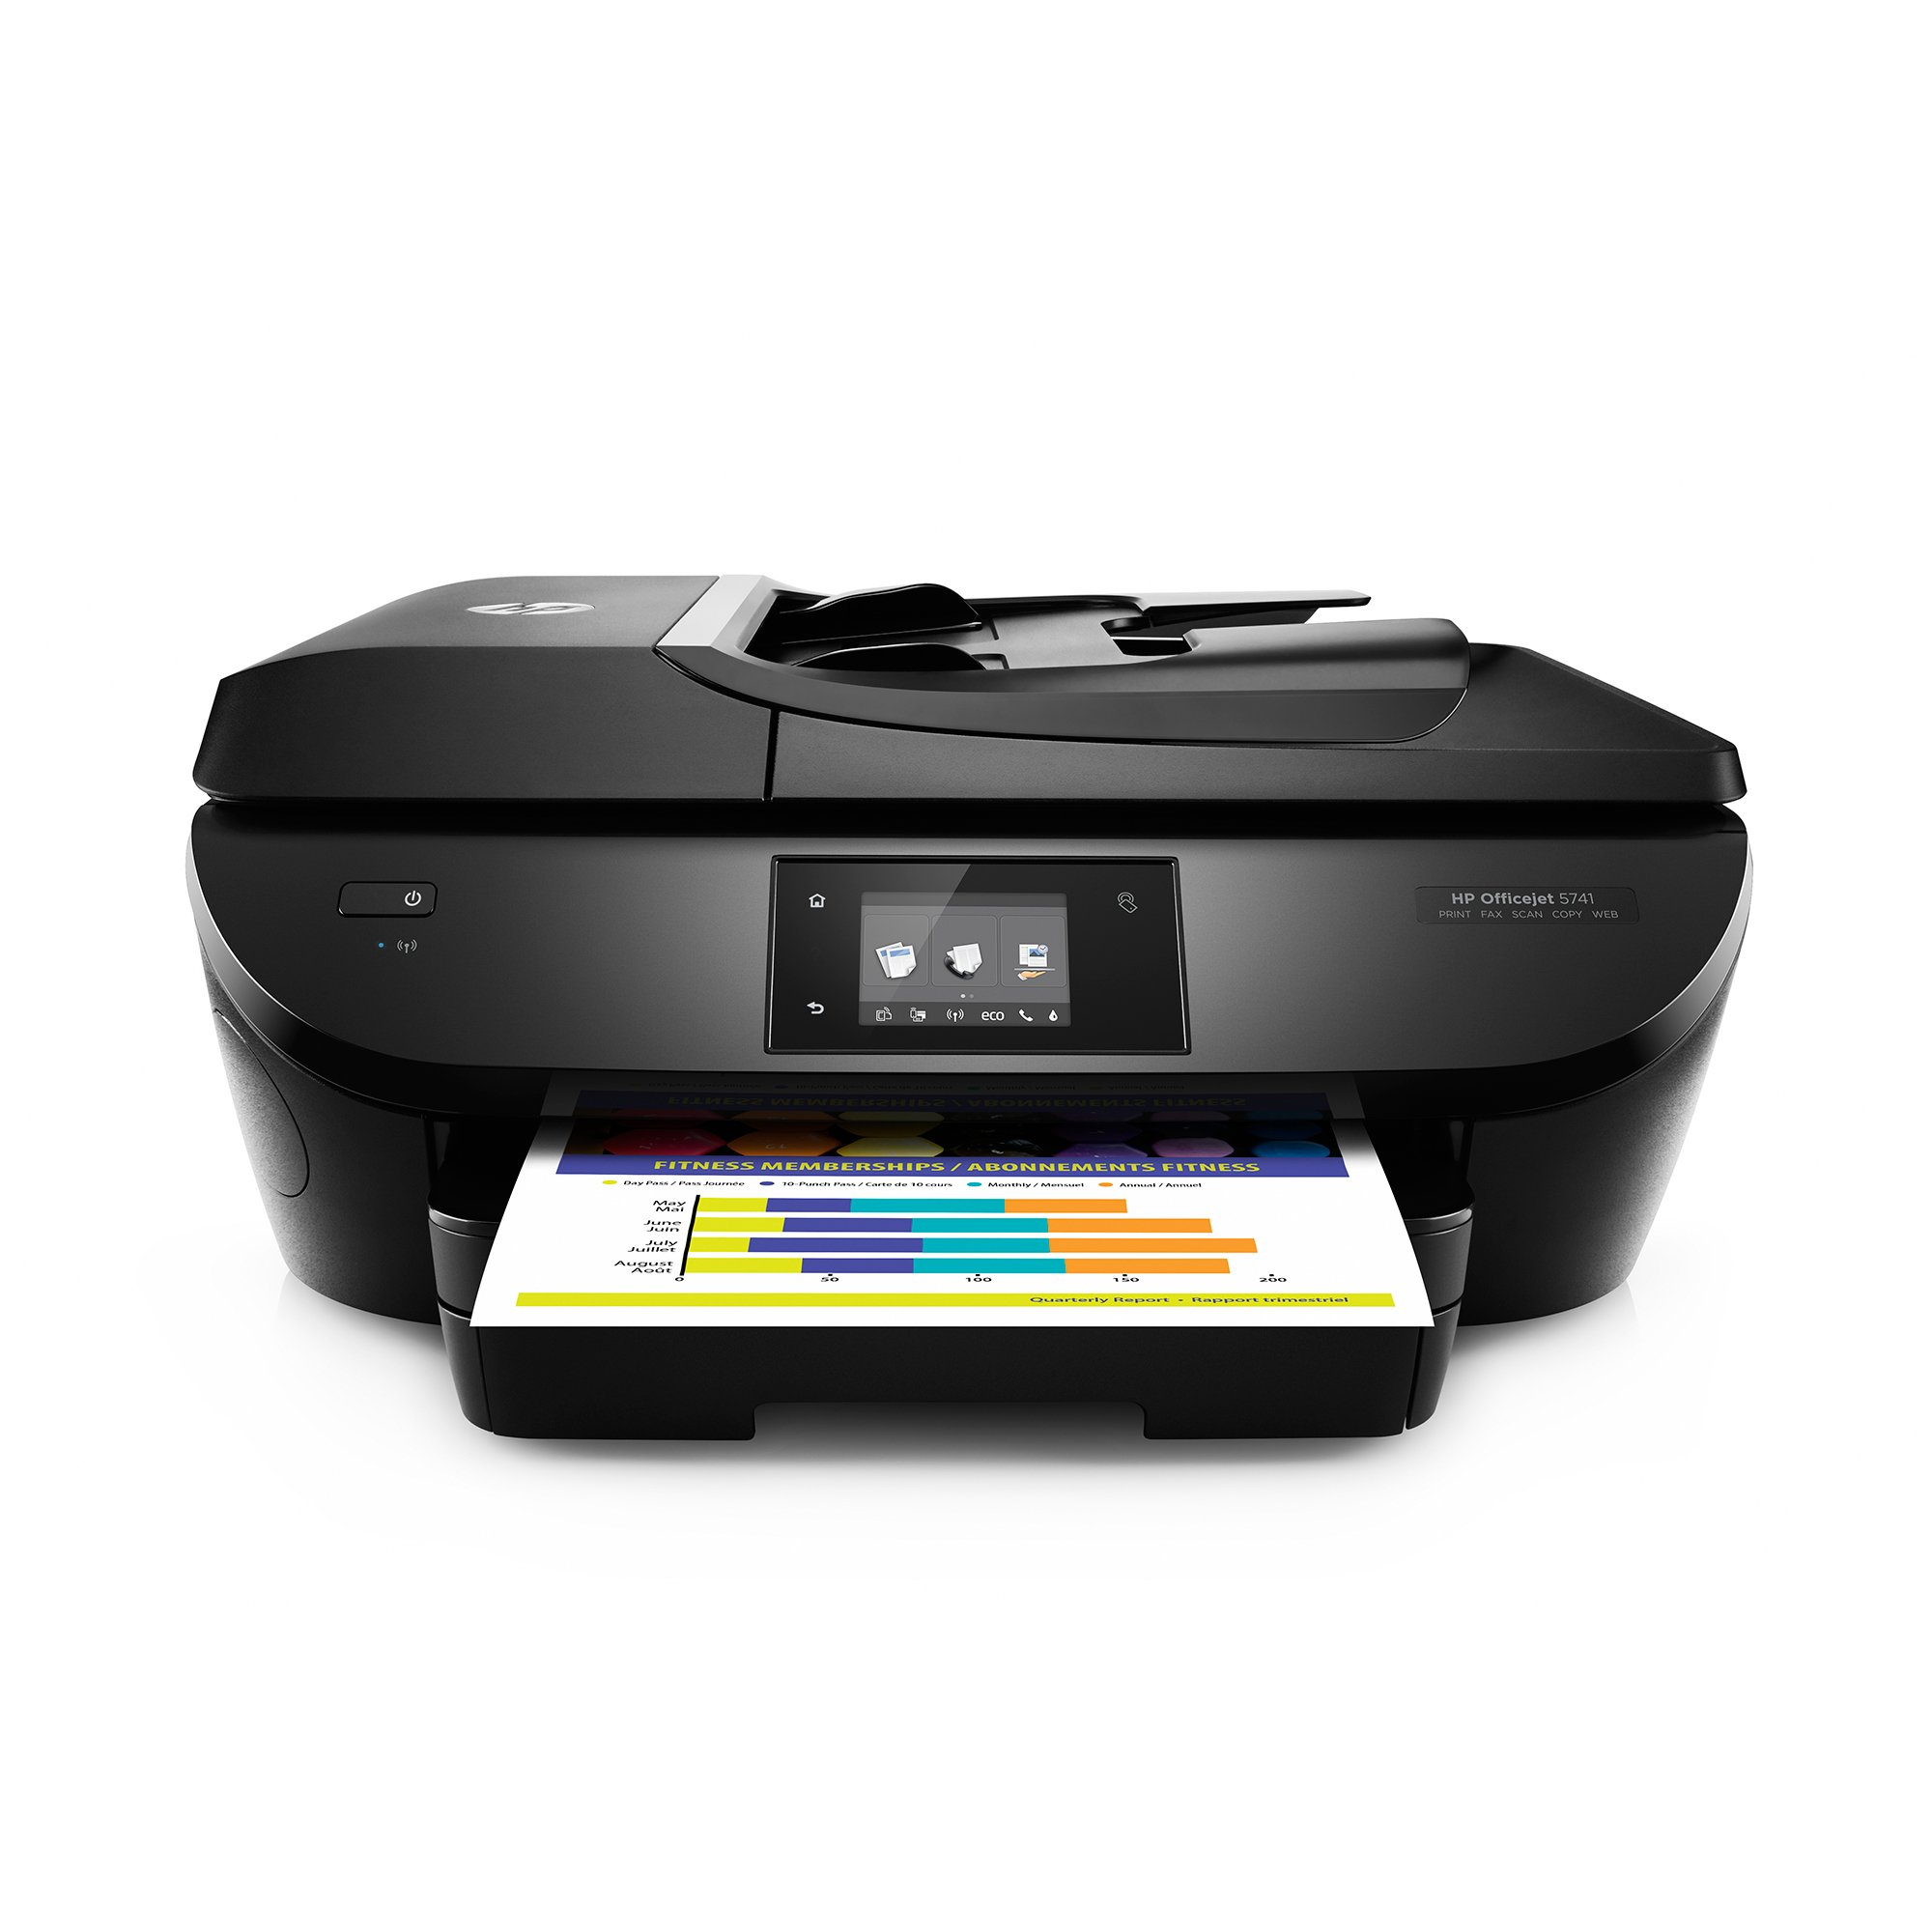 HP OfficeJet 5741 All-in-One Wireless Printer with Mobile Printing, includes 1 year of Instant Ink (B9S83A) by HP